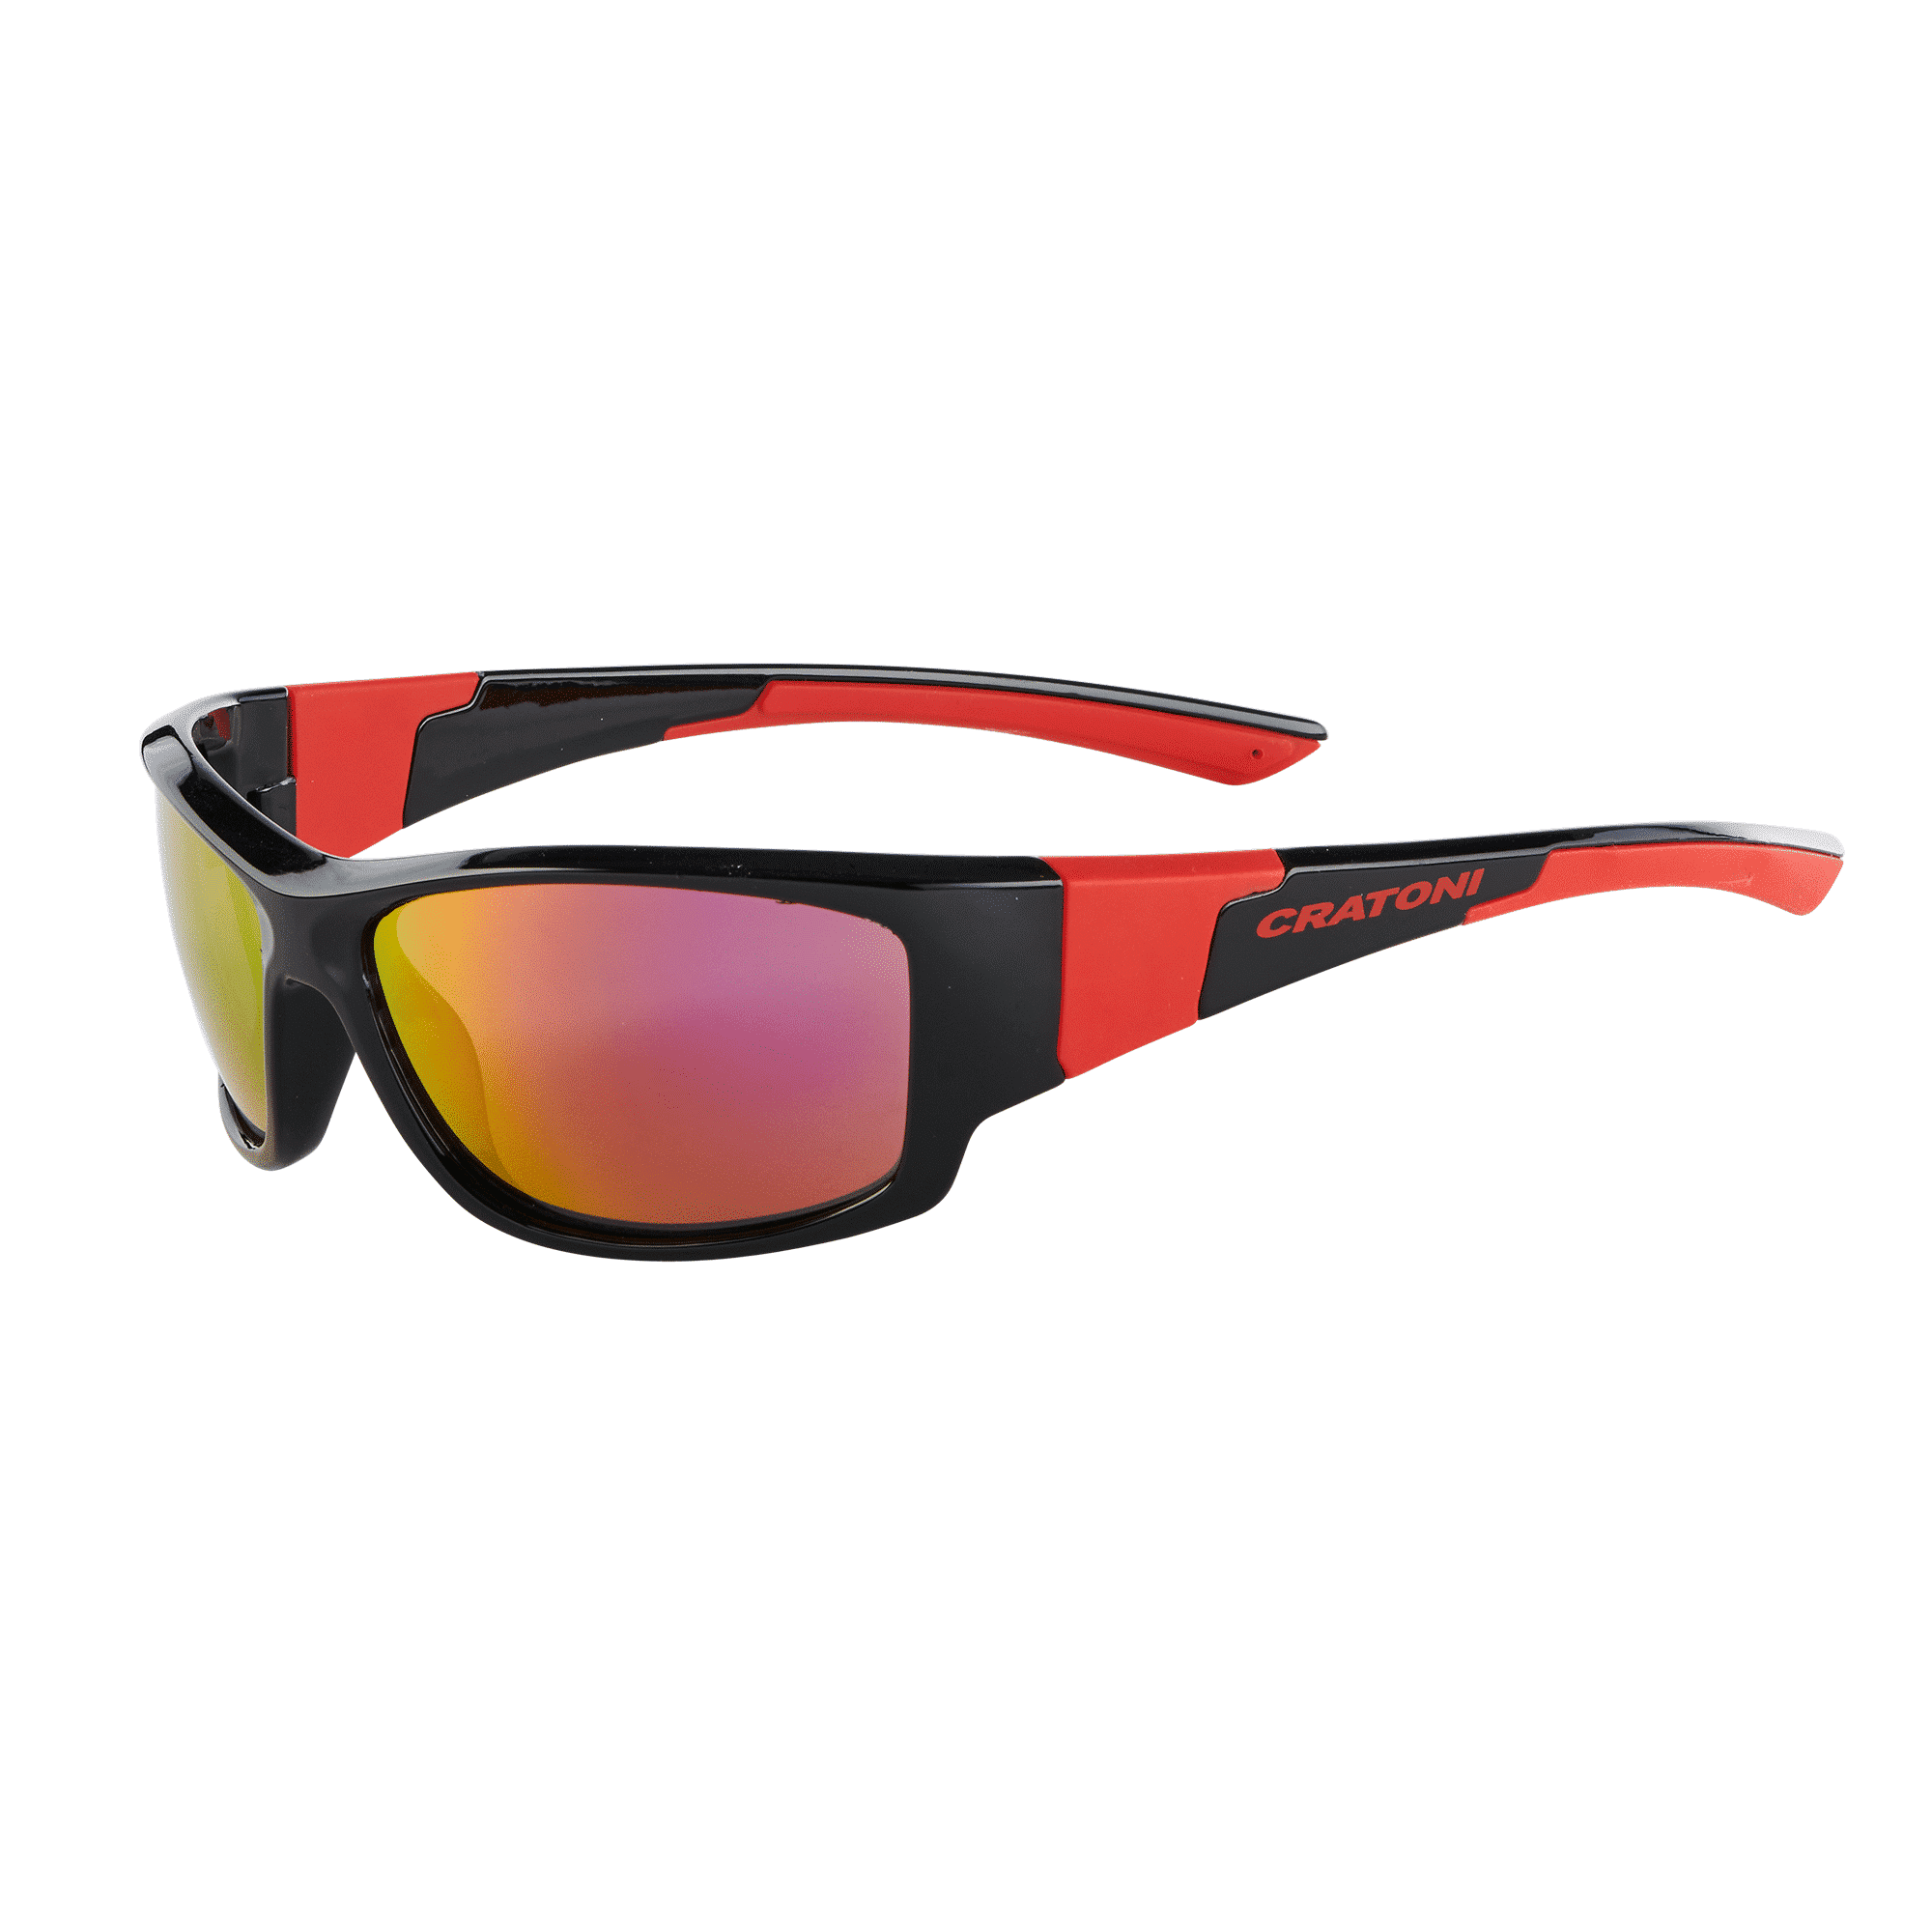 Cratoni C-Spin black-red-glossy